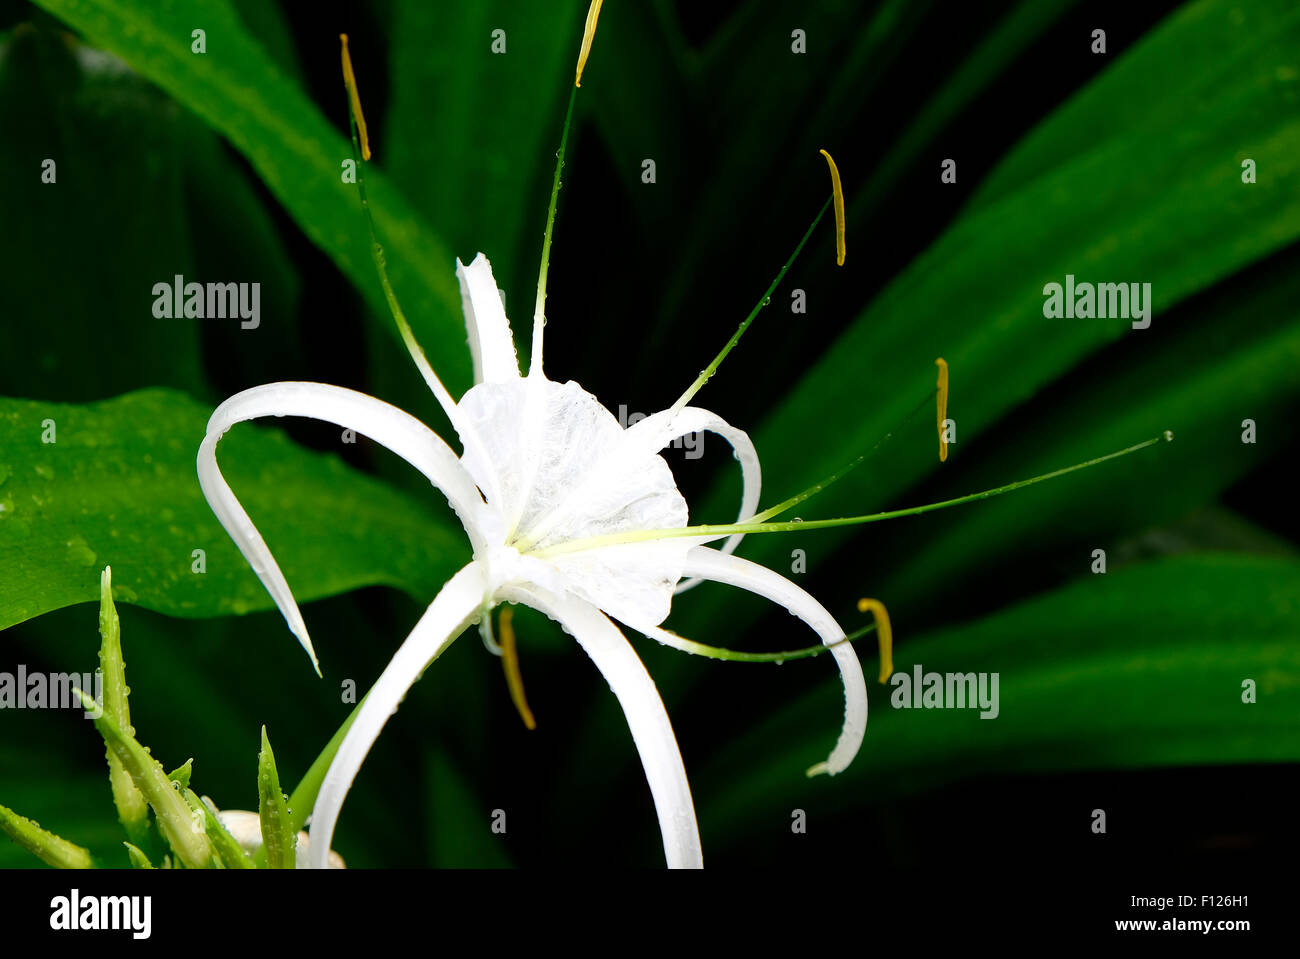 Spider lily stock photos spider lily stock images alamy white spider lily flower growing in garden stock image izmirmasajfo